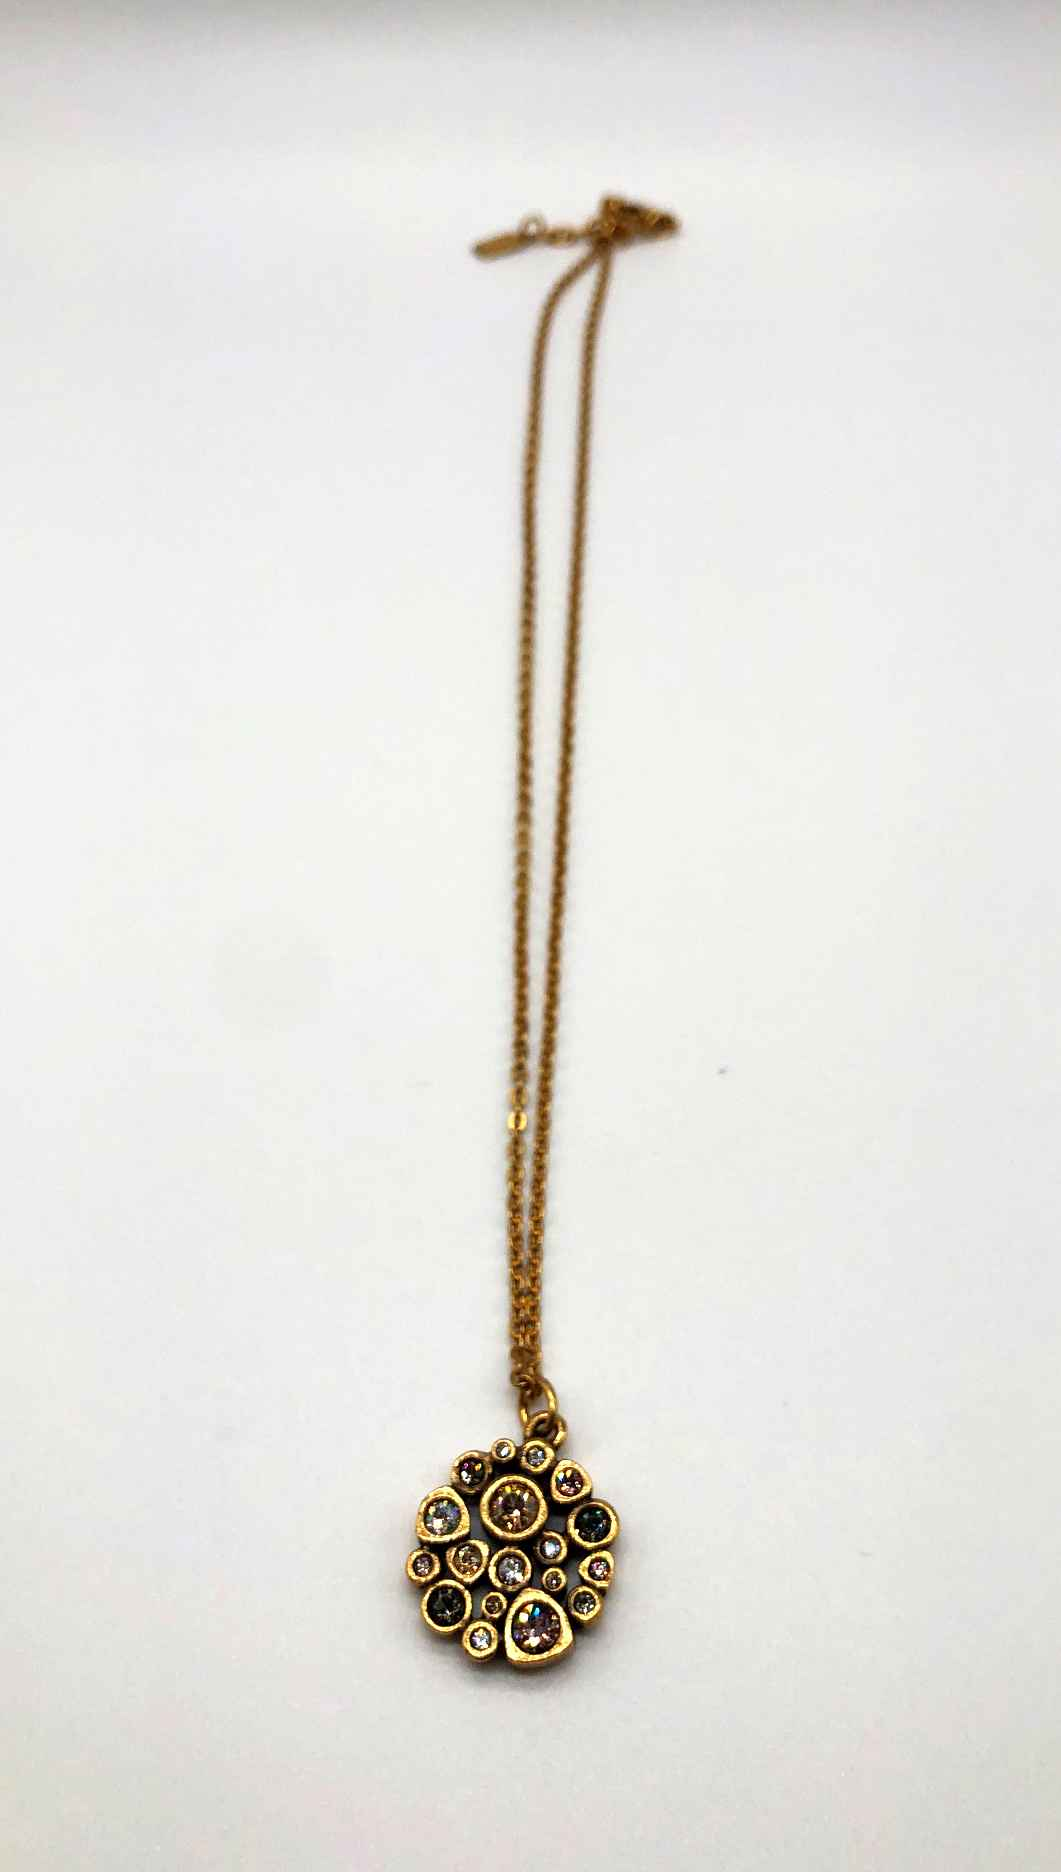 Popcorn Necklace in Gold, Champagne